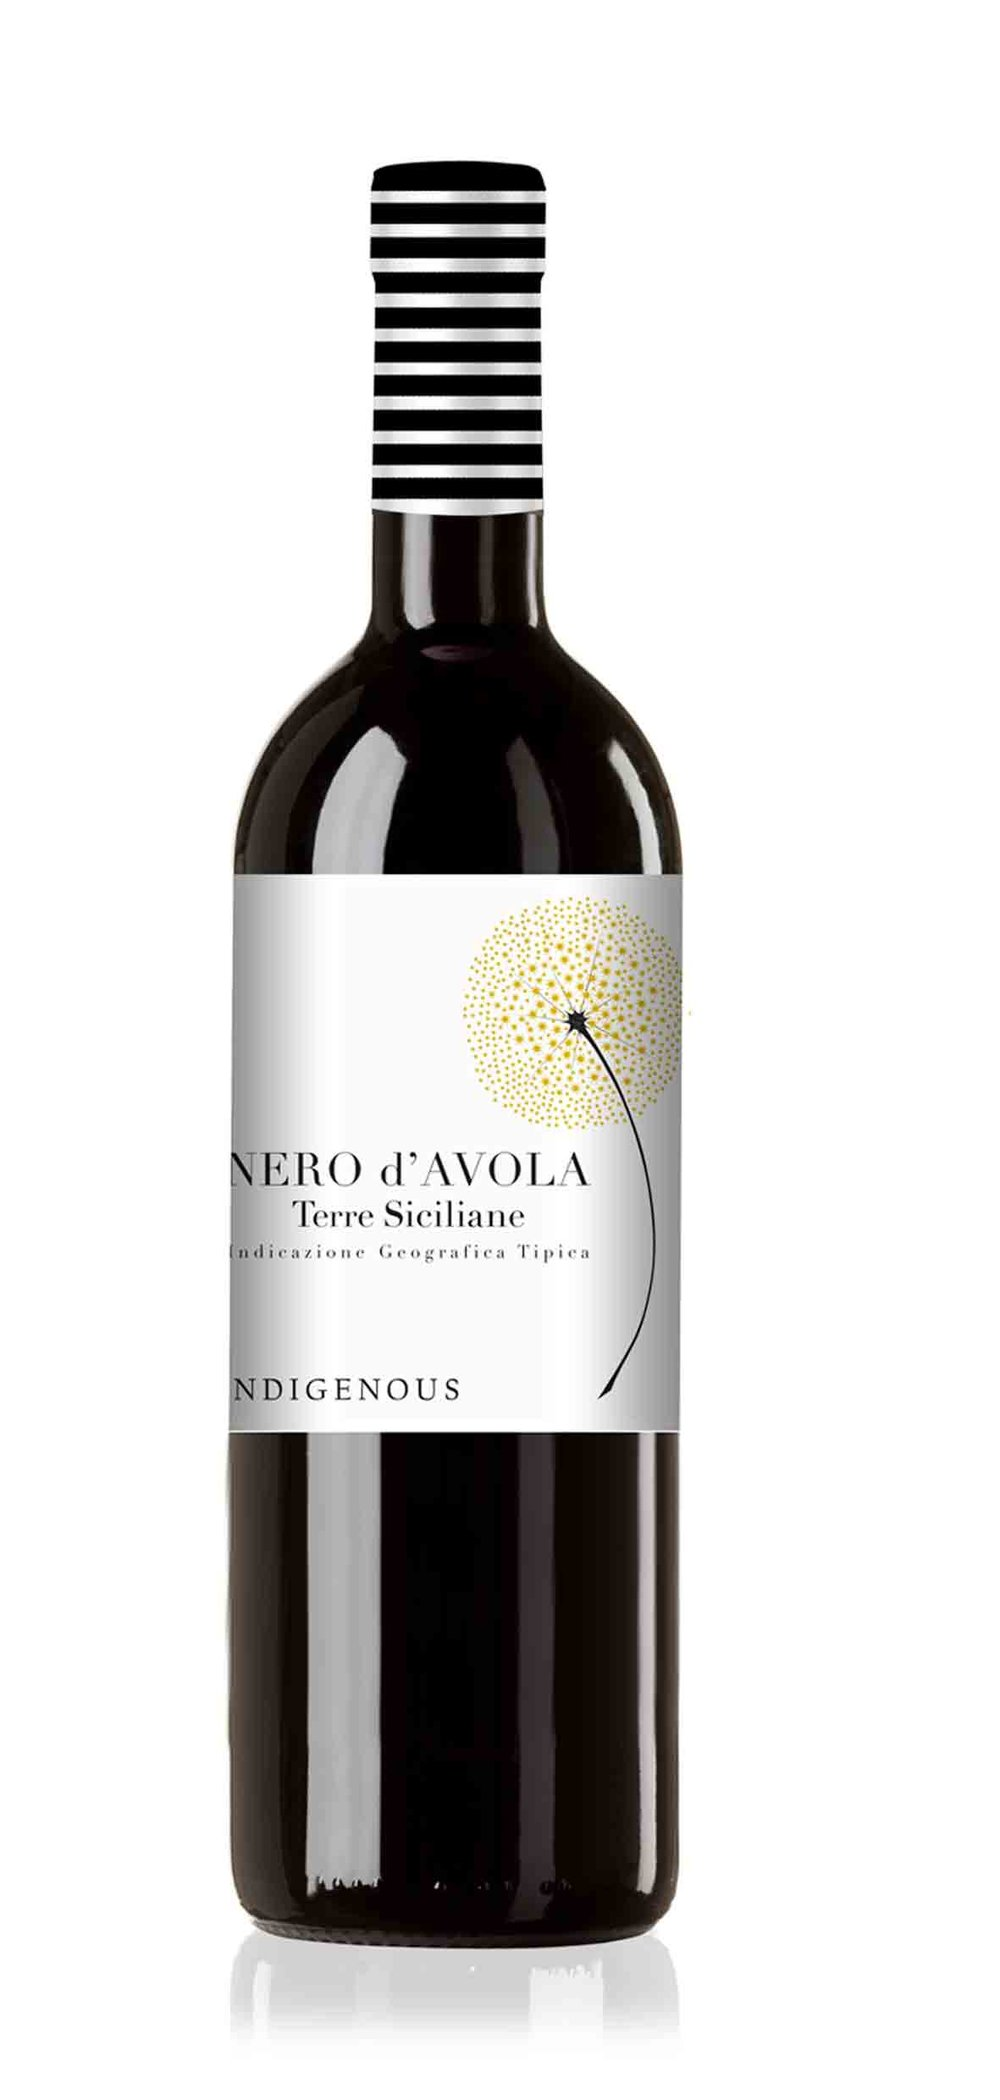 Wine-Indigenous-single-neroavola.jpg